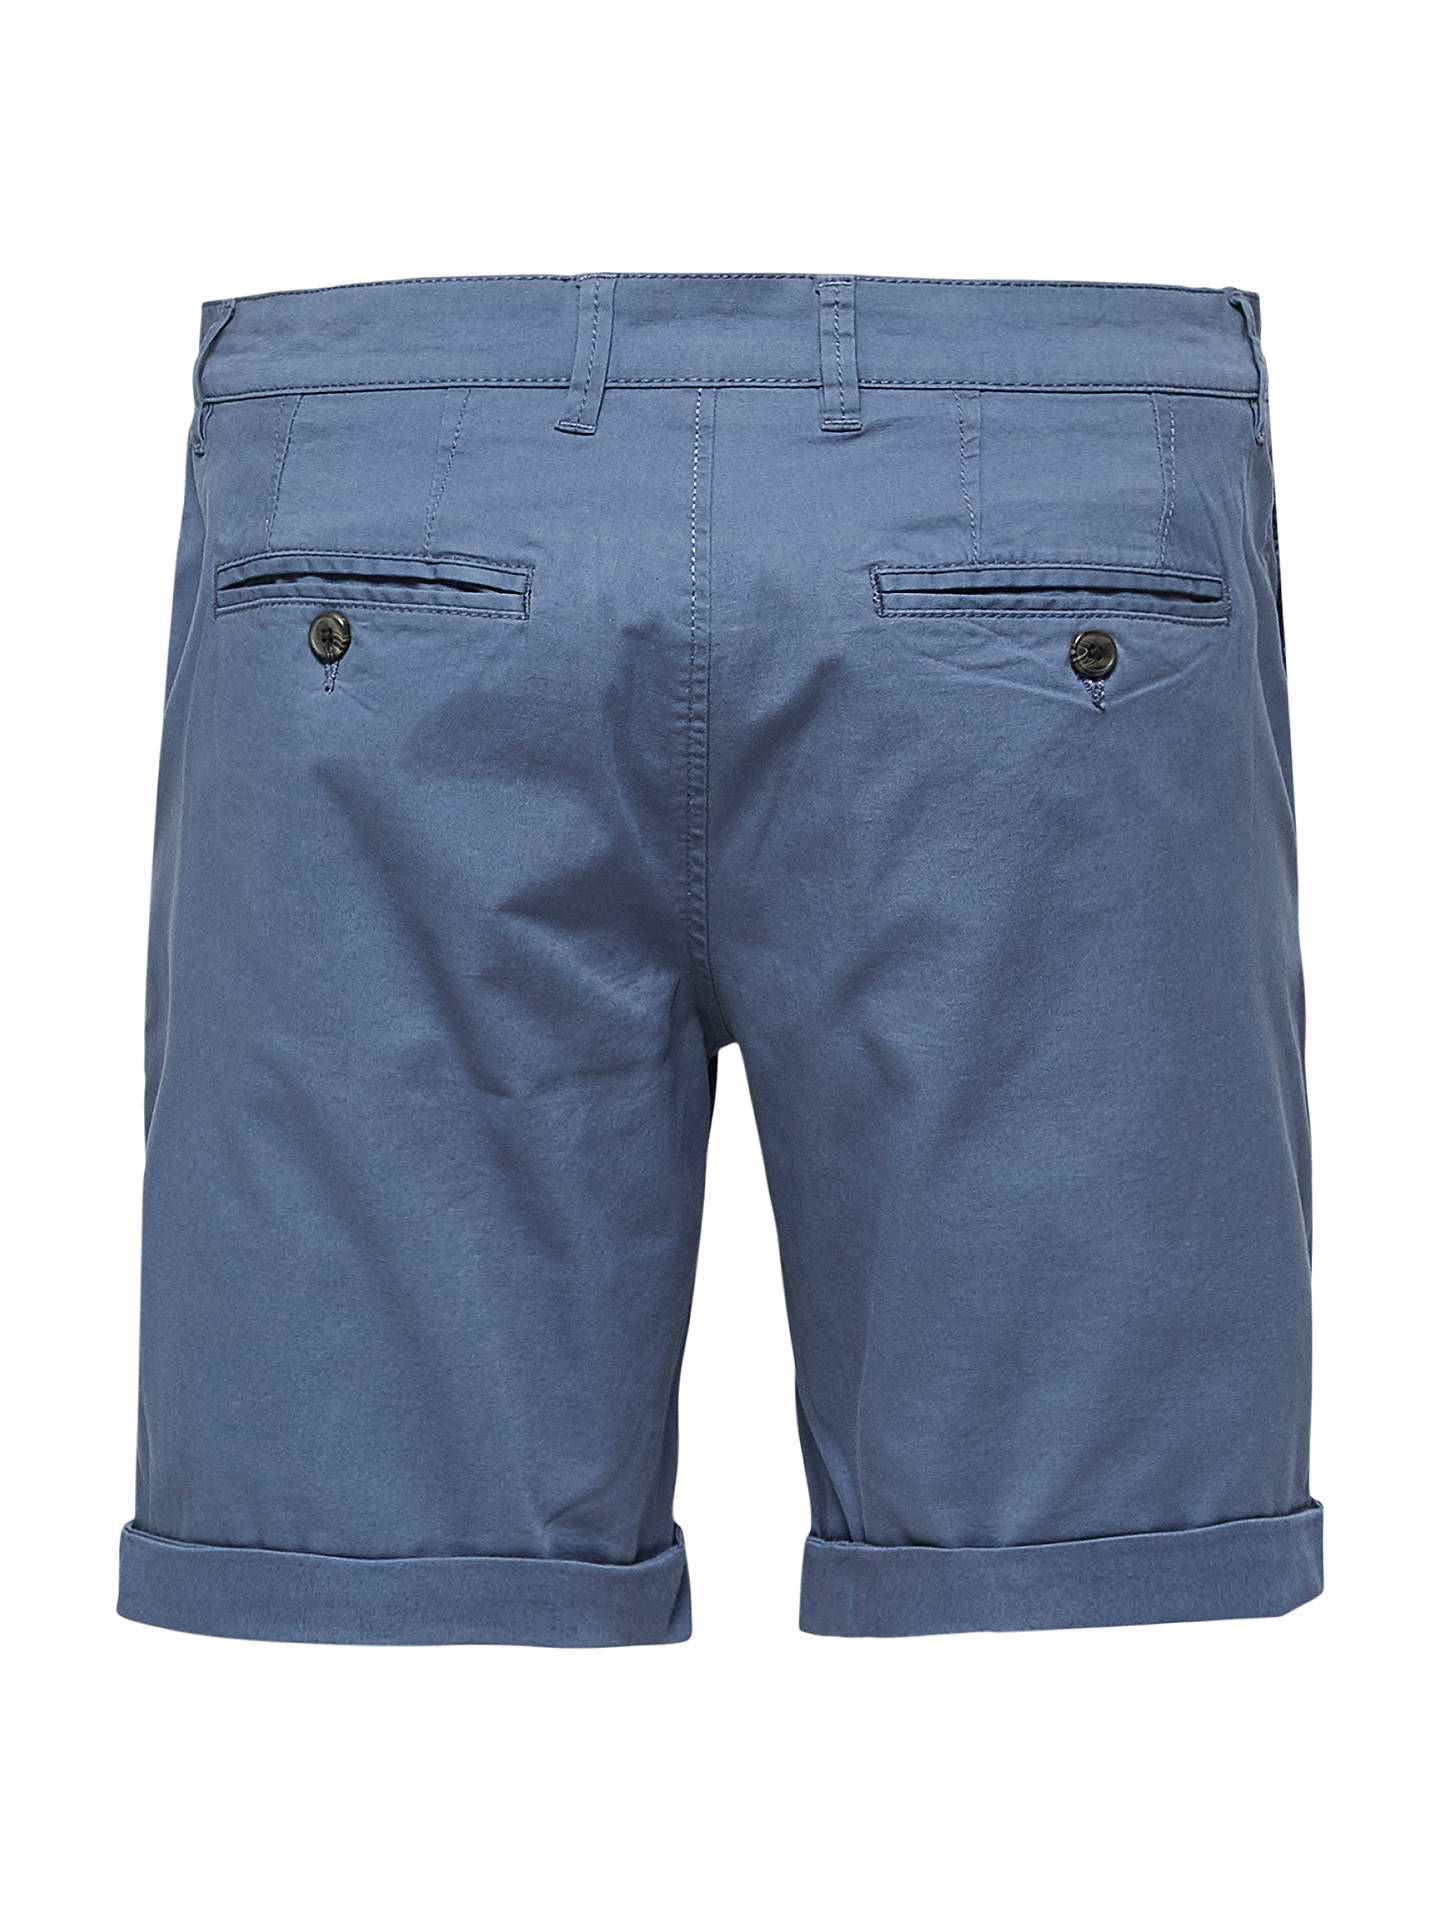 BuySelected Homme Paris Chino Shorts, Vintage Indigo, S Online at johnlewis.com